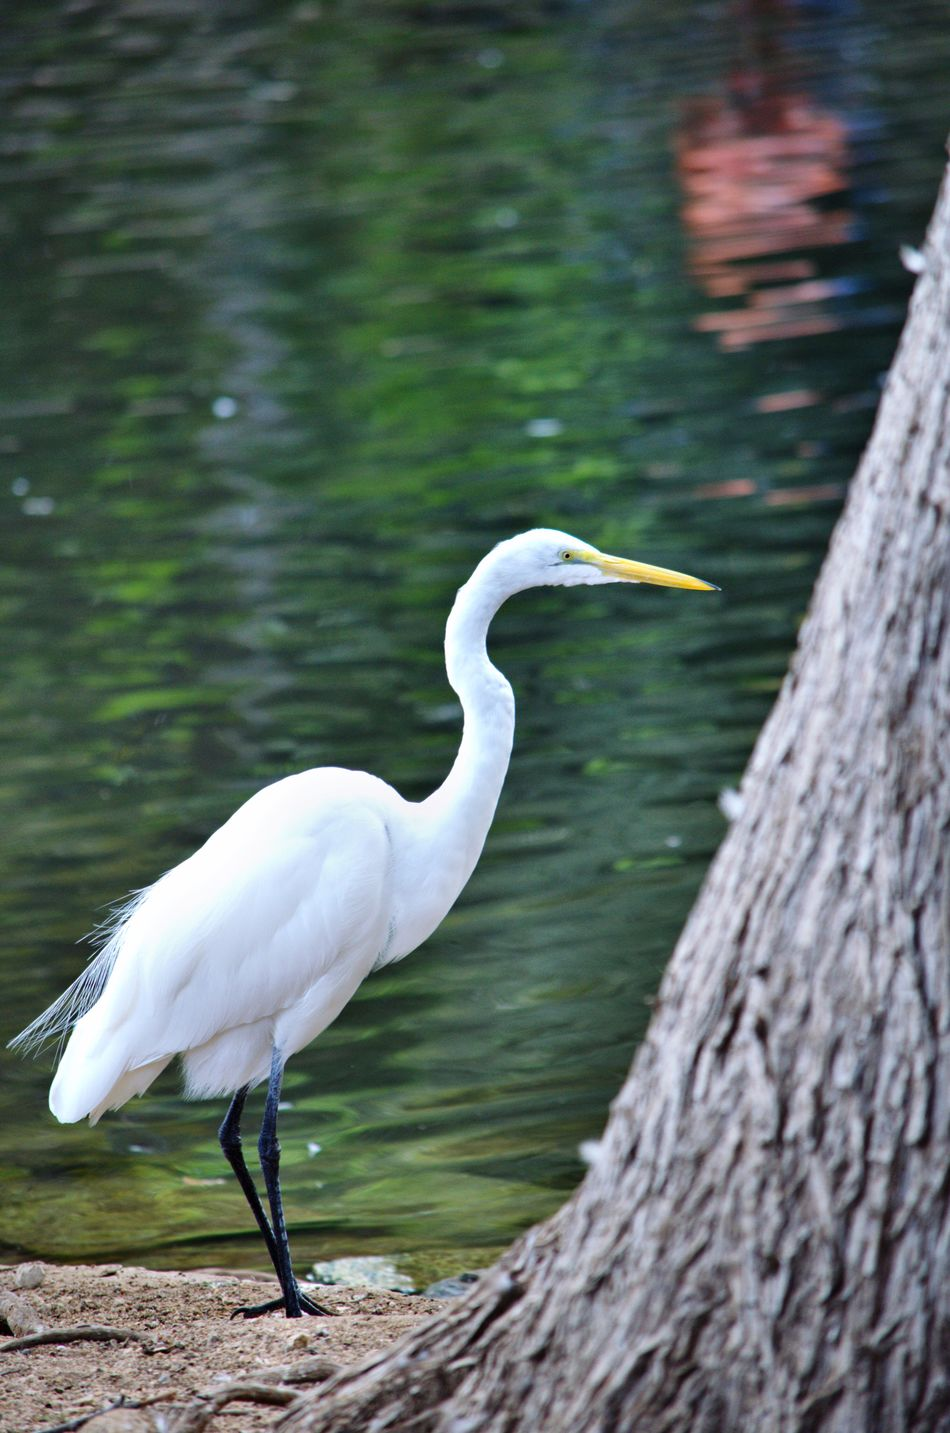 Animal Wildlife Water Bird Nature Outdoors San Antonio, Texas San Antonio Zoo Beauty In Nature Crane Whooping Crane Bird Focus Object Animal